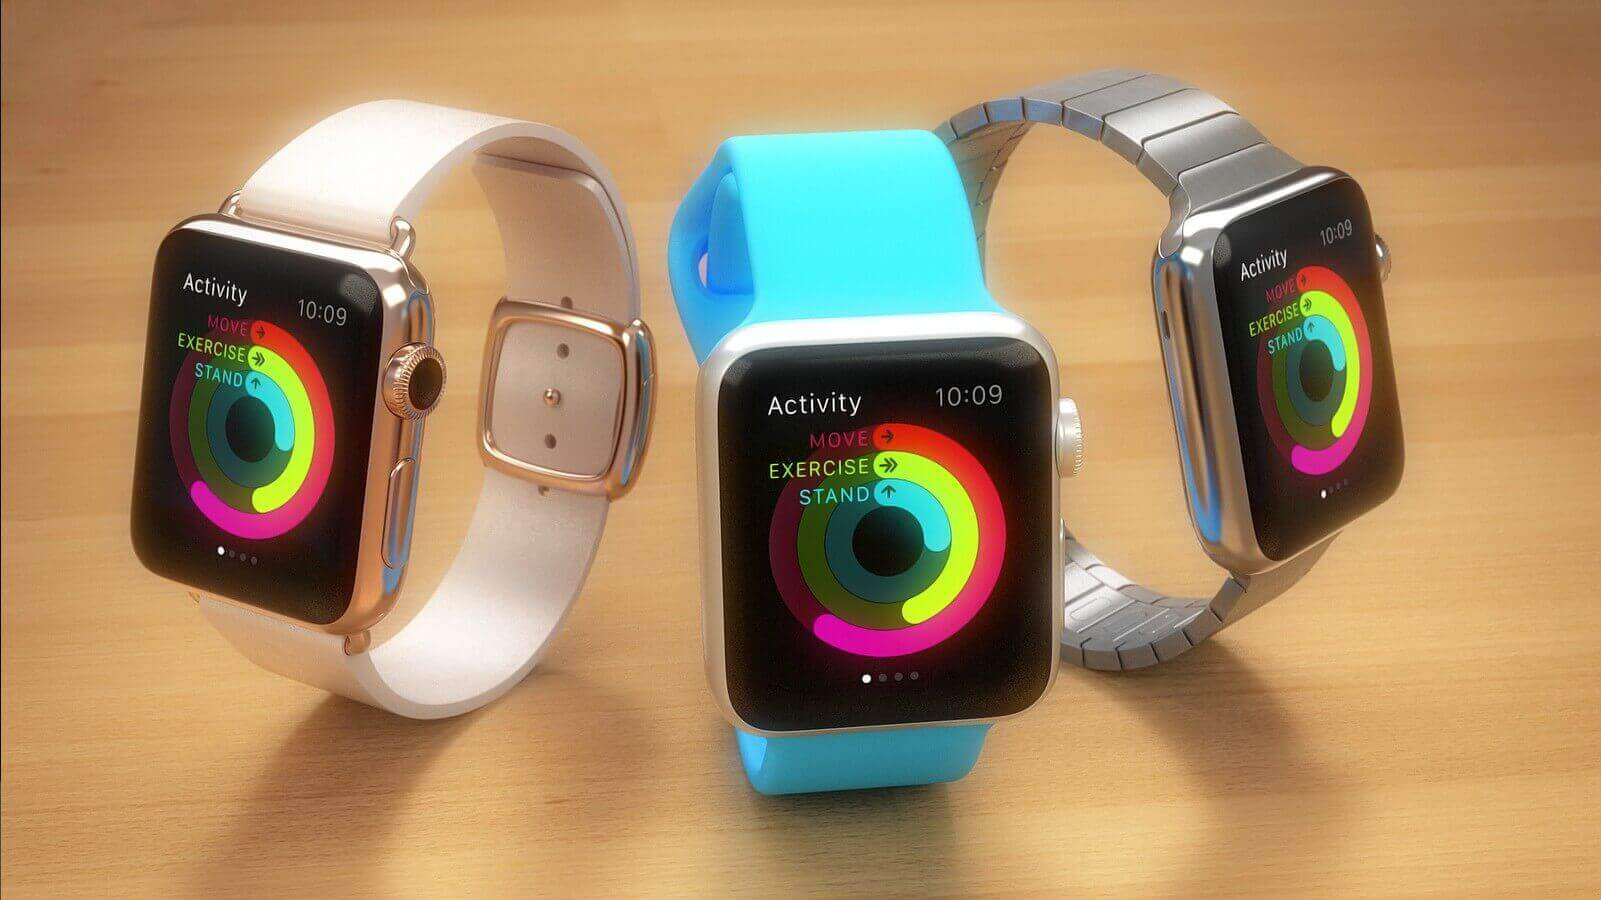 Apple Watch mockup helps you decide | All3DP